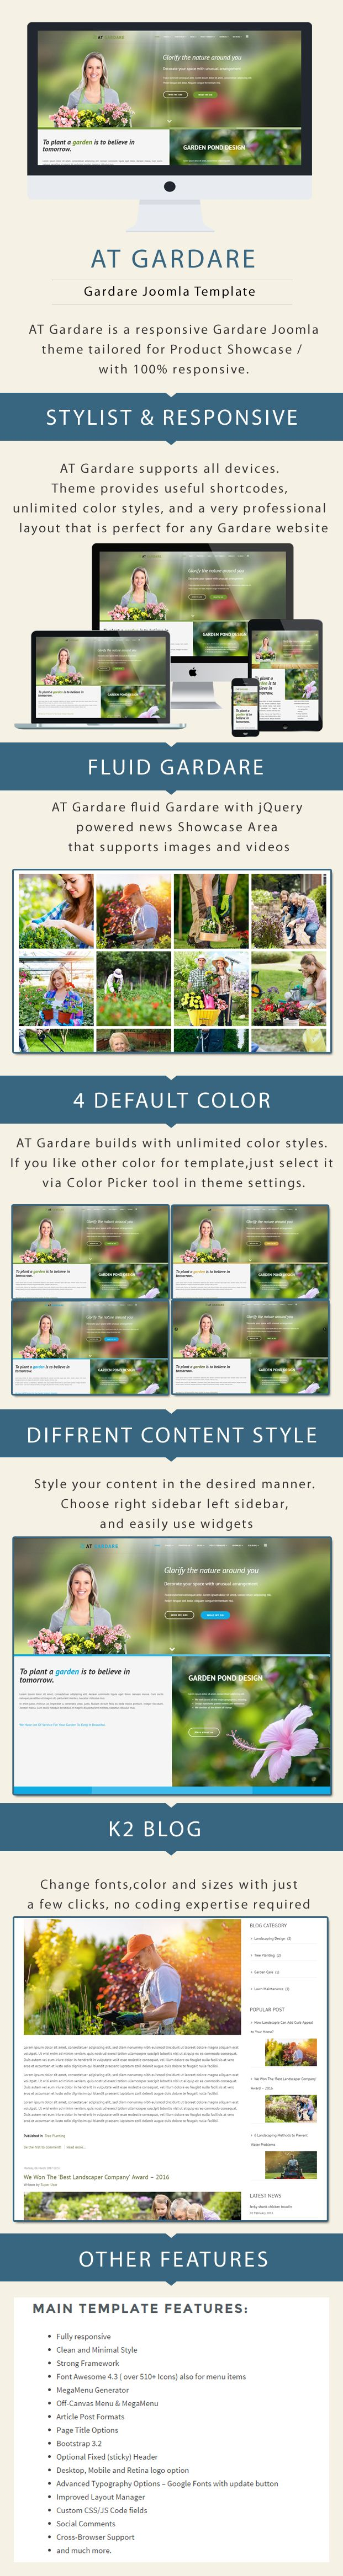 AT Gardare - Responsive Garden Joomla template Screenshot 1